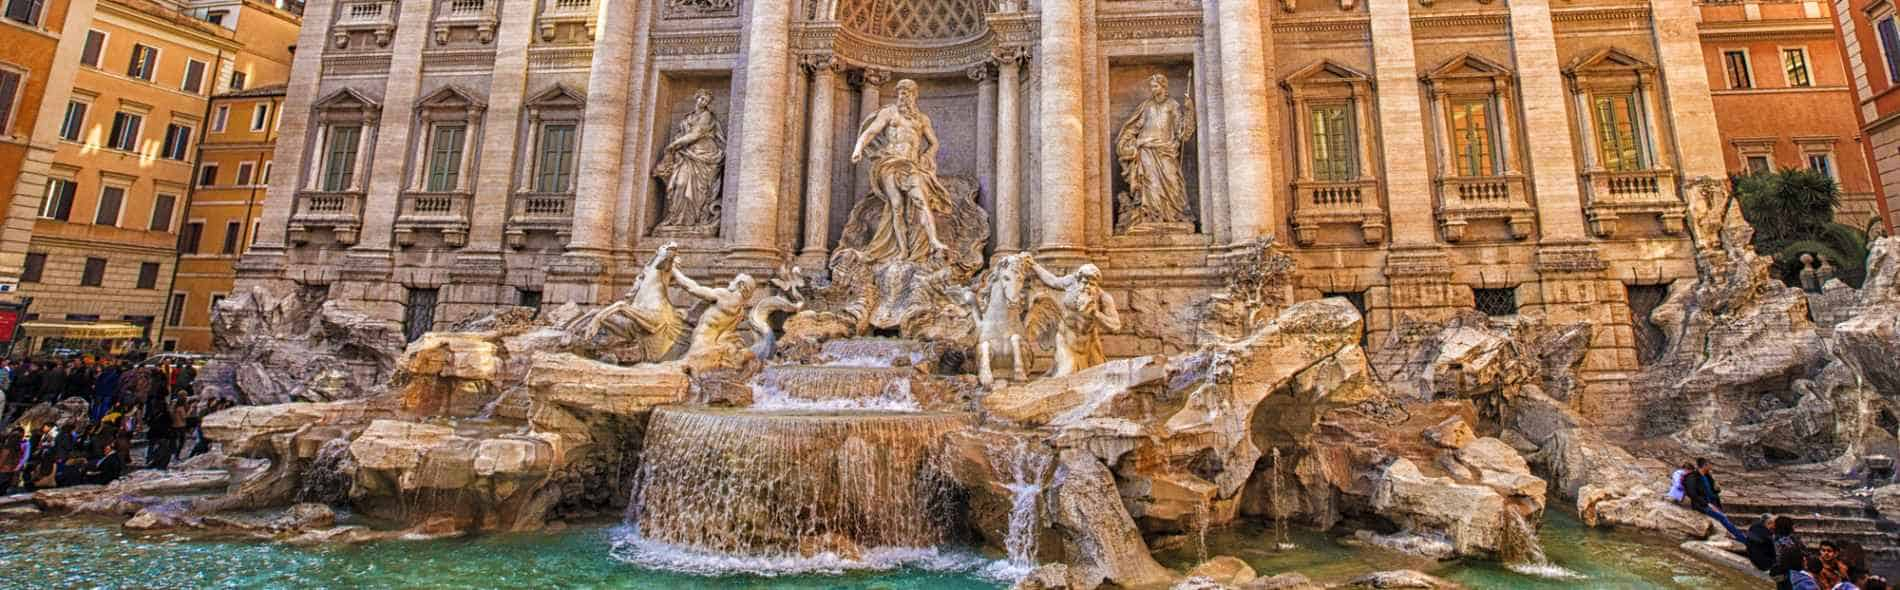 Dowmntown Rome private tour